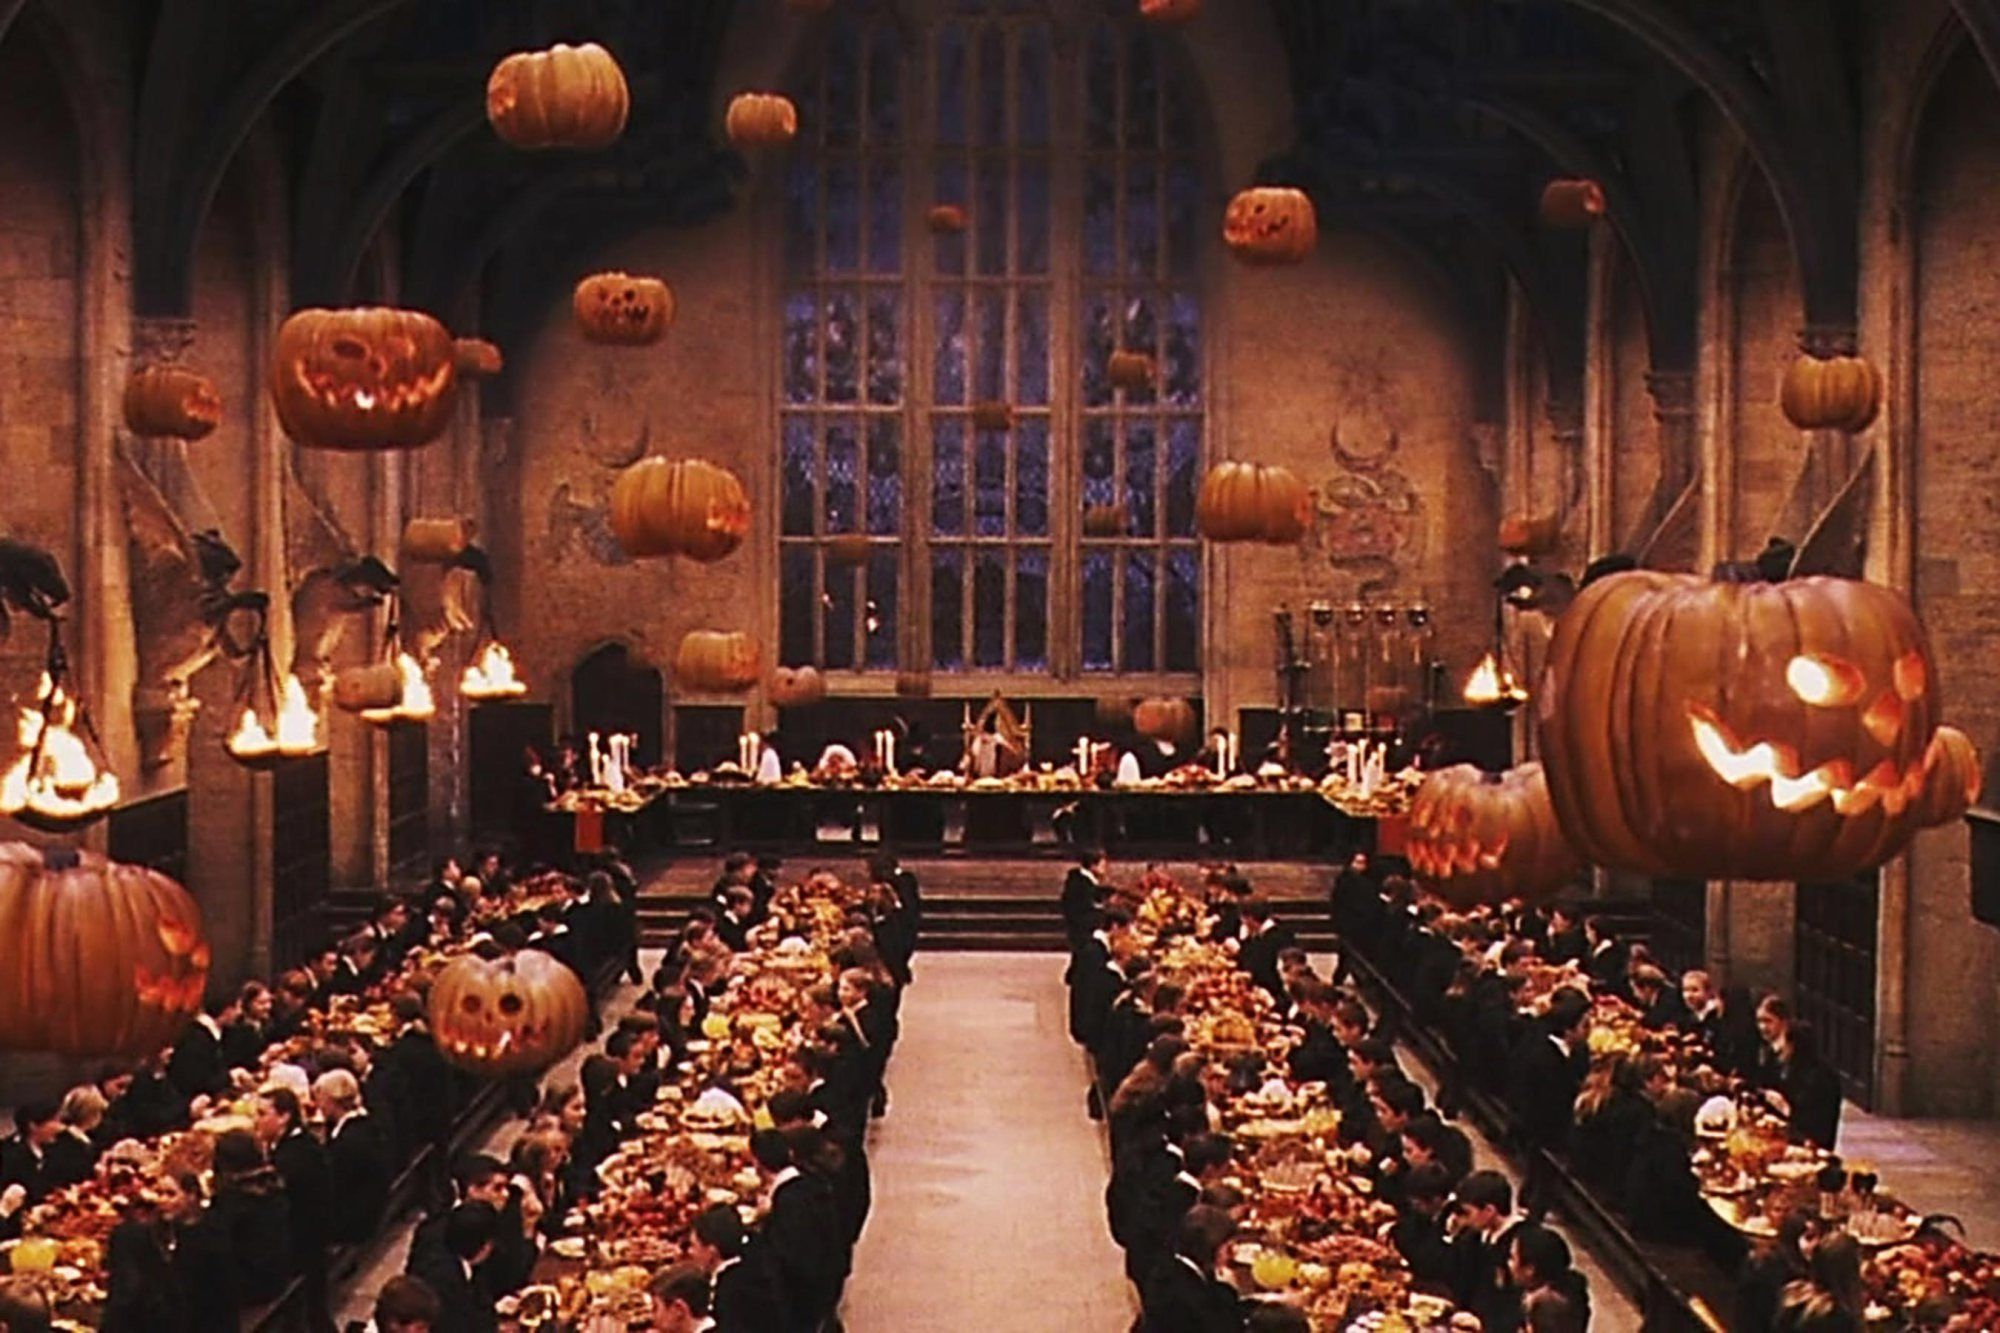 The 'Harry Potter' pumpkin carvings this Halloween are gorgeous